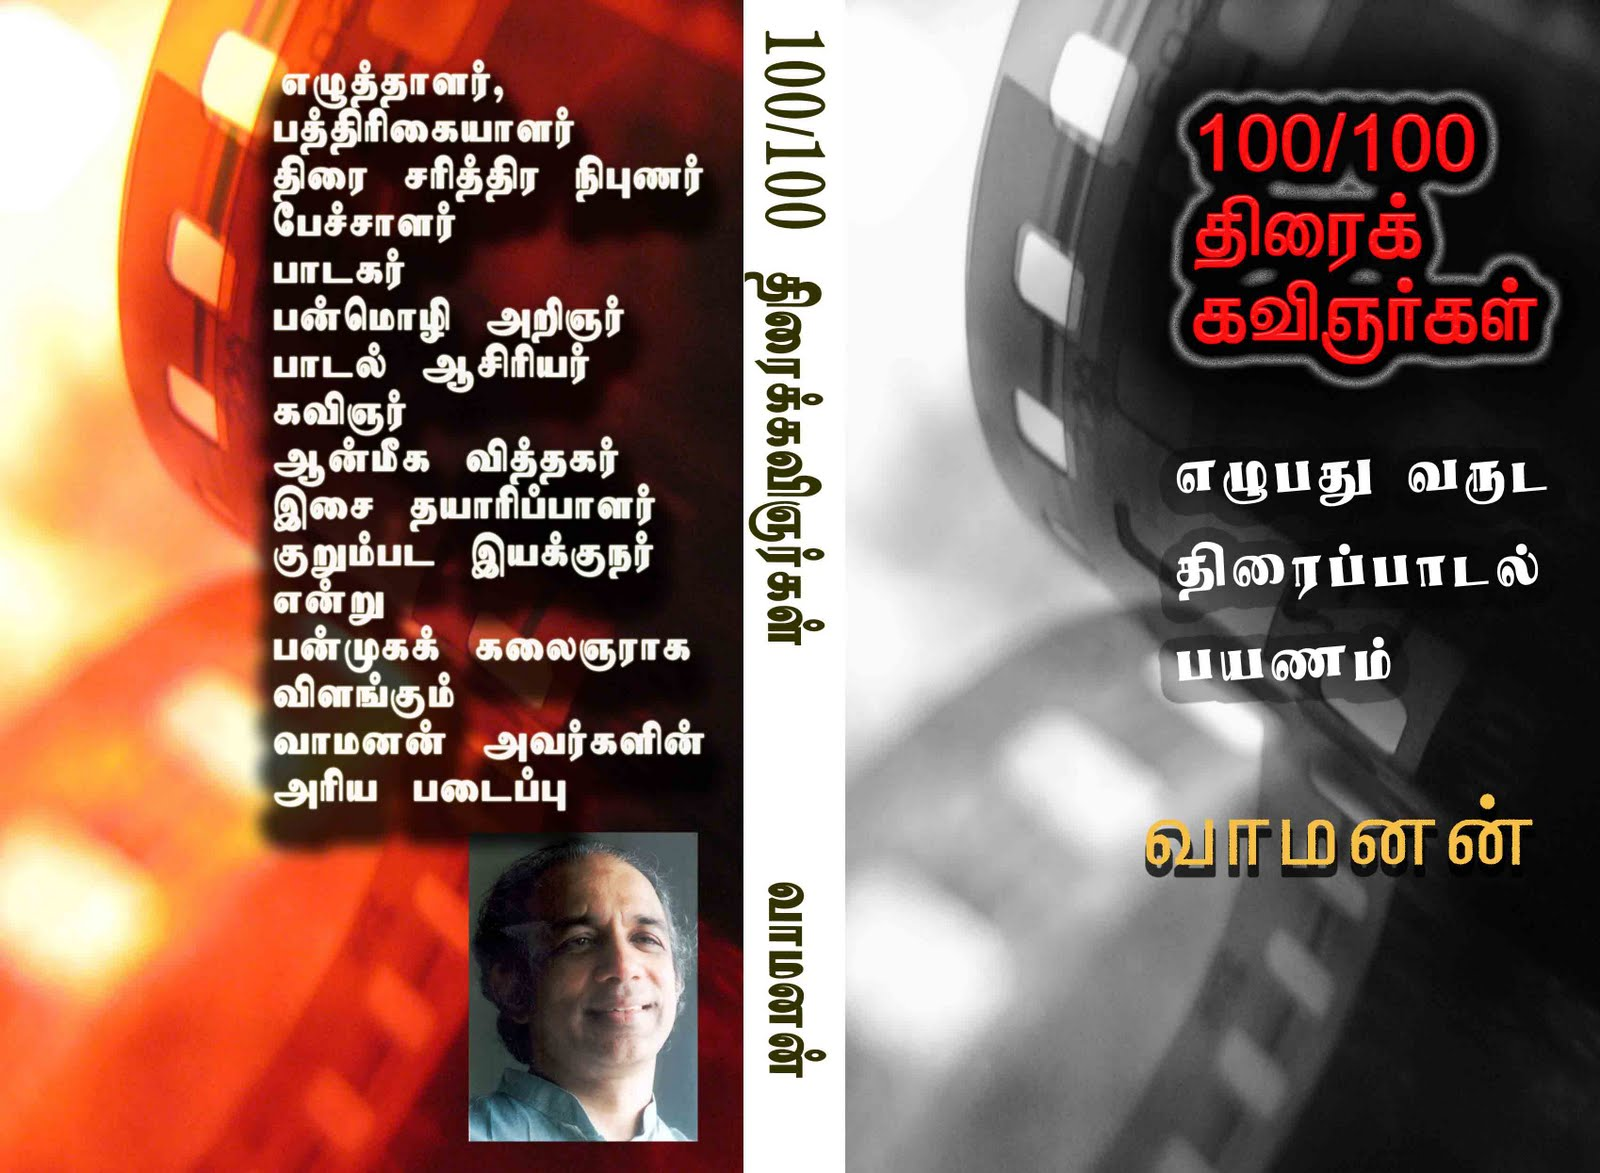 Tamil Film Songs And Lyrics Down The Decades Vamanan S Sight